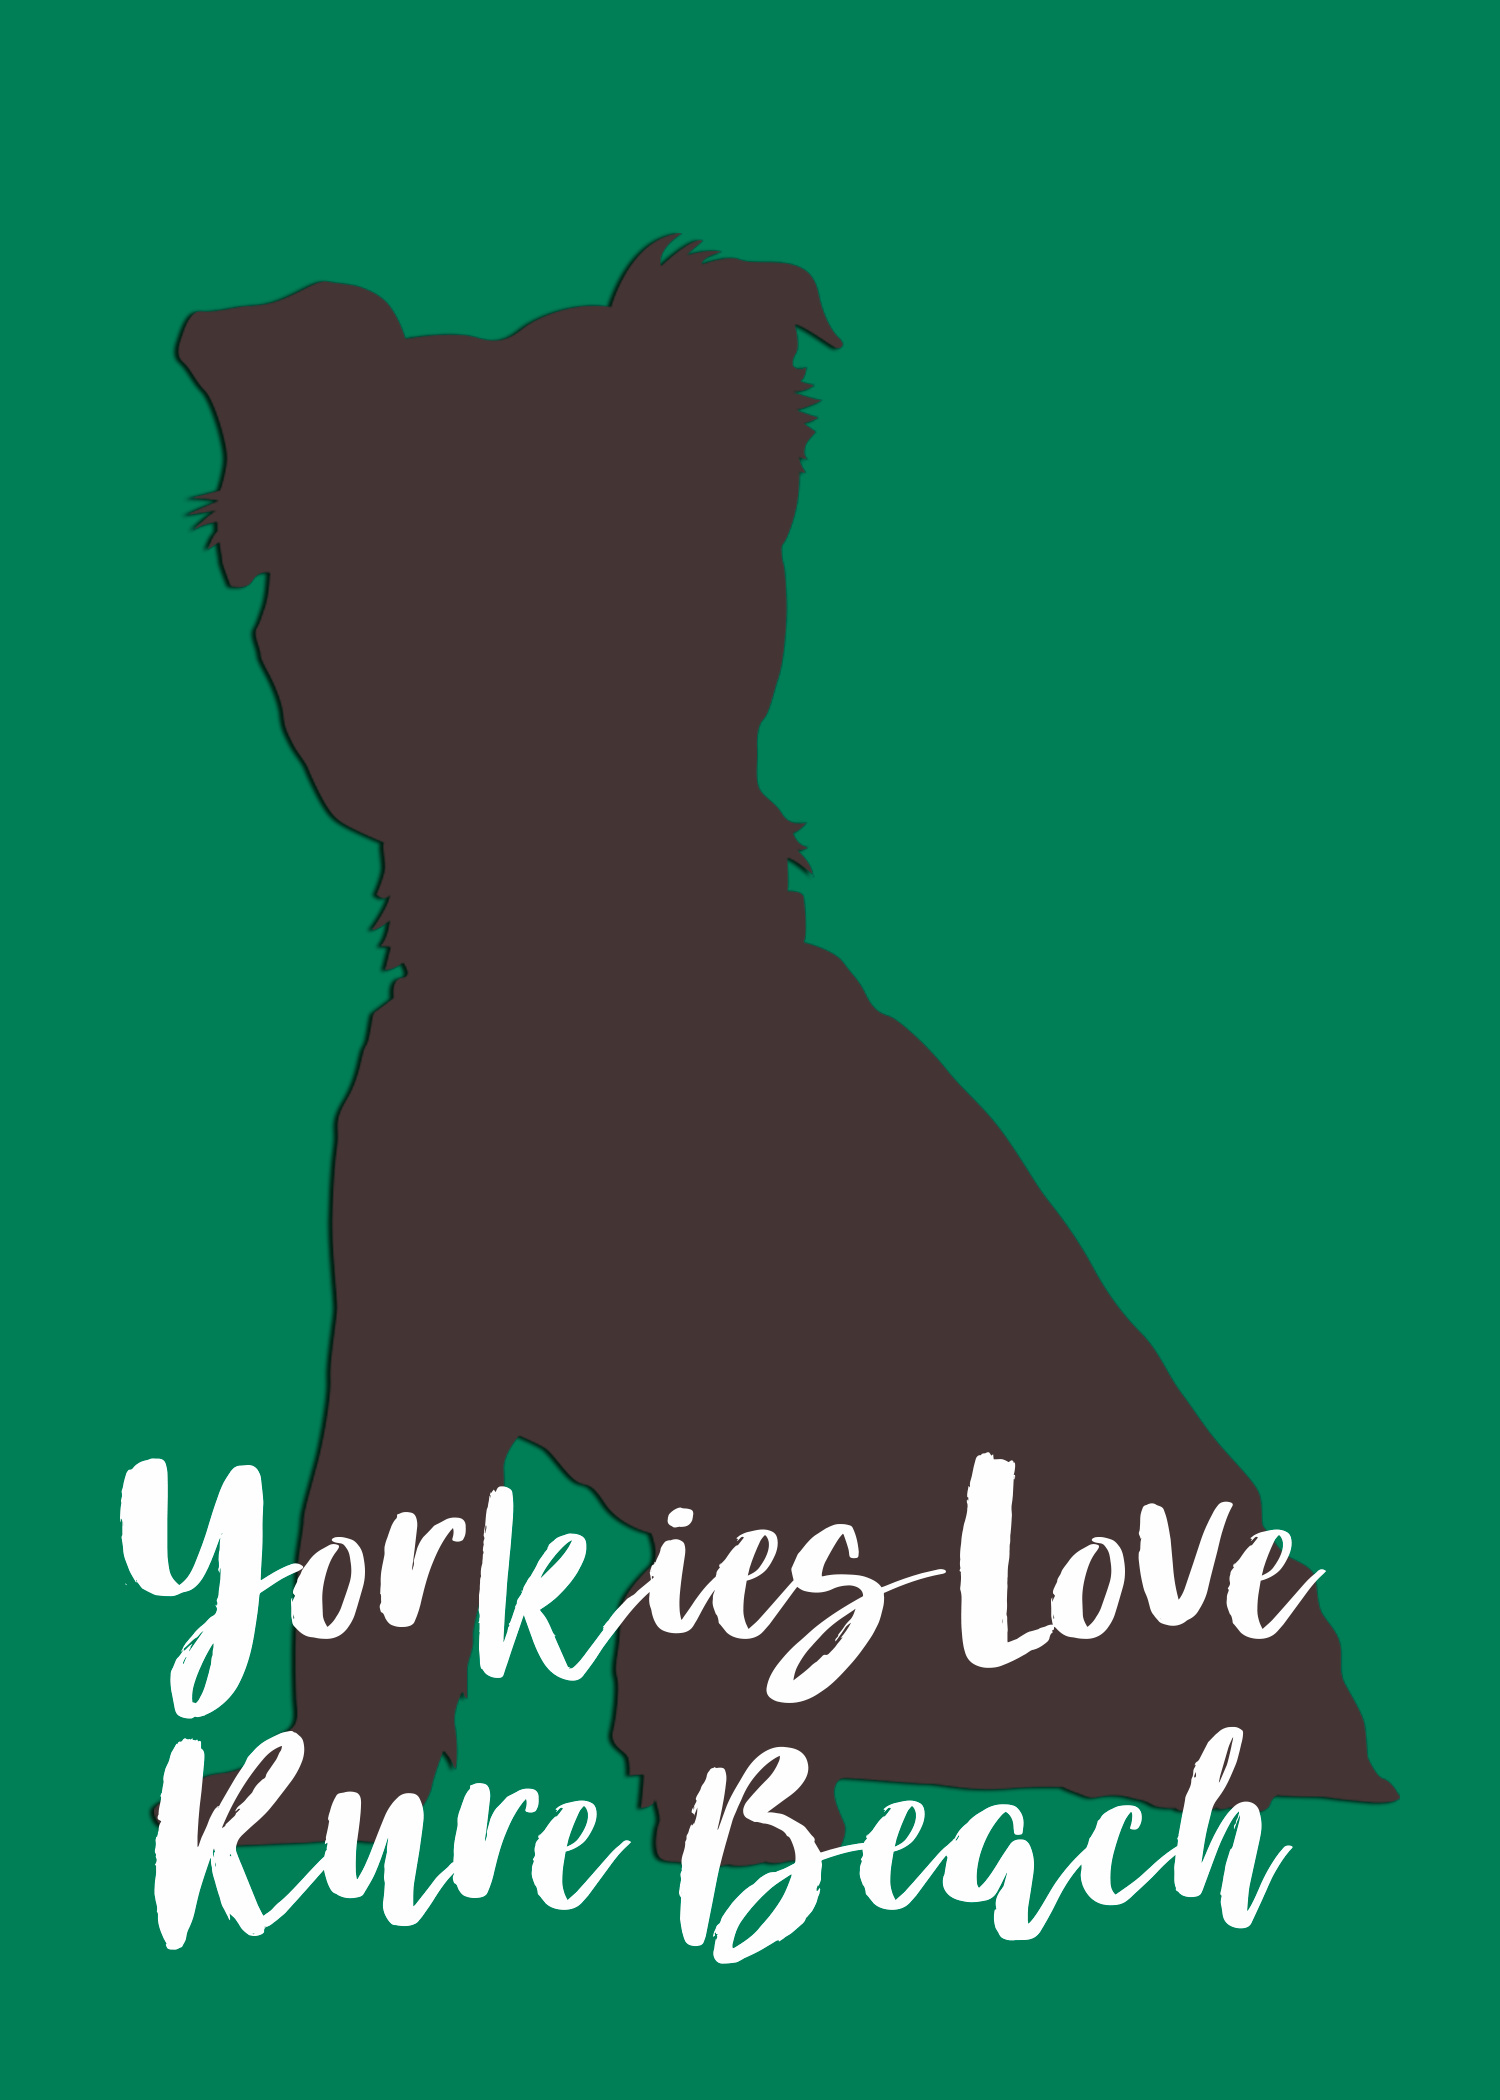 ABS_Dogslove_0011_Yorkies-Love-Kure-Beach.png.jpg